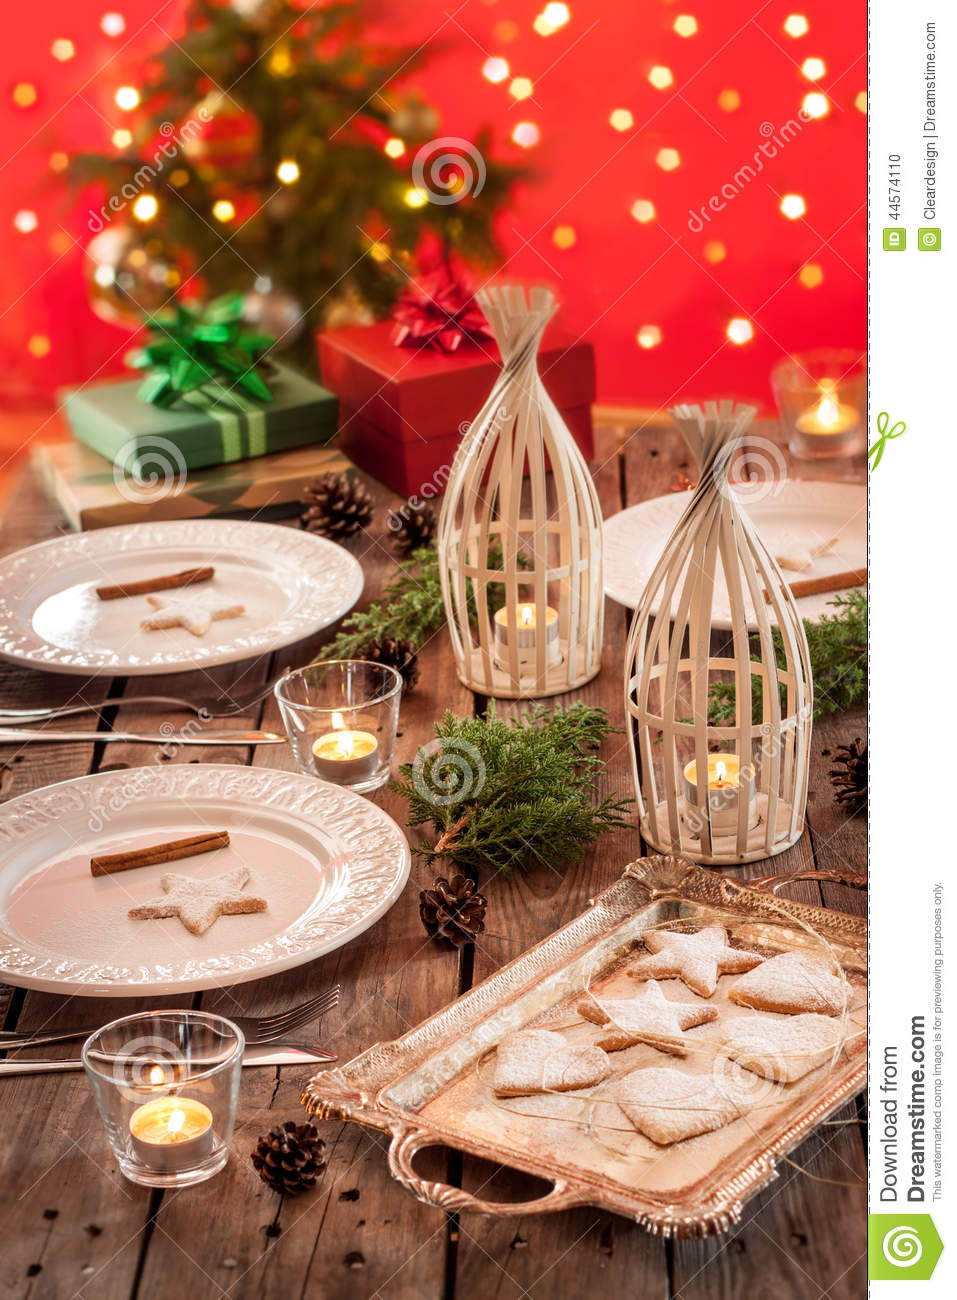 Christmas Table Setting With Rustic Style Decorations